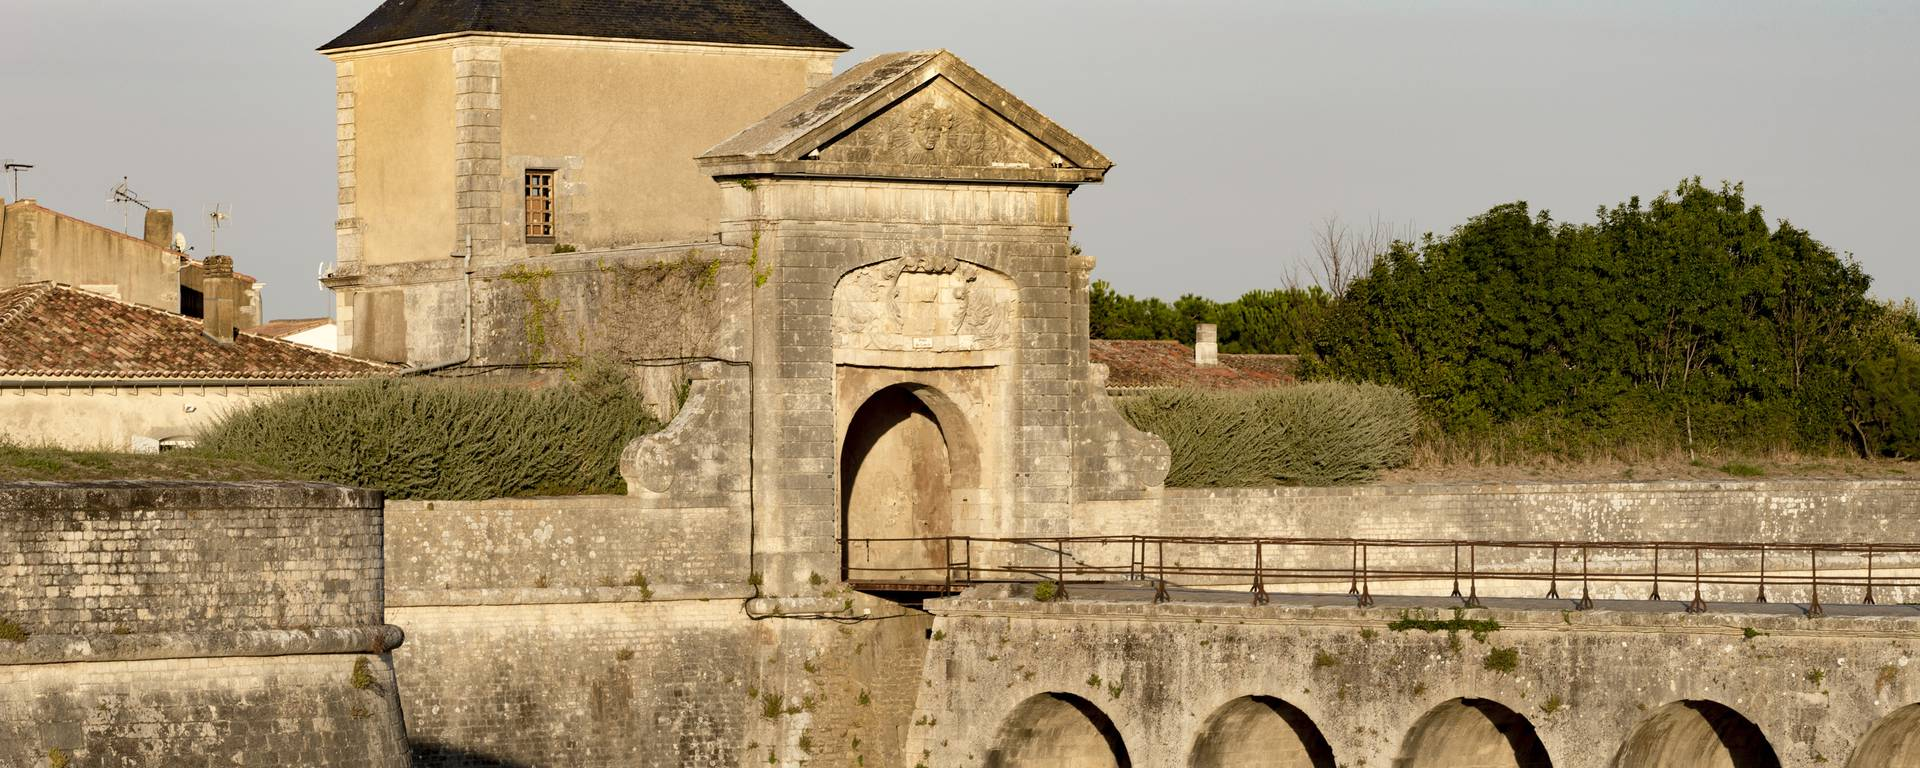 Fortifications of Saint-martin de ré